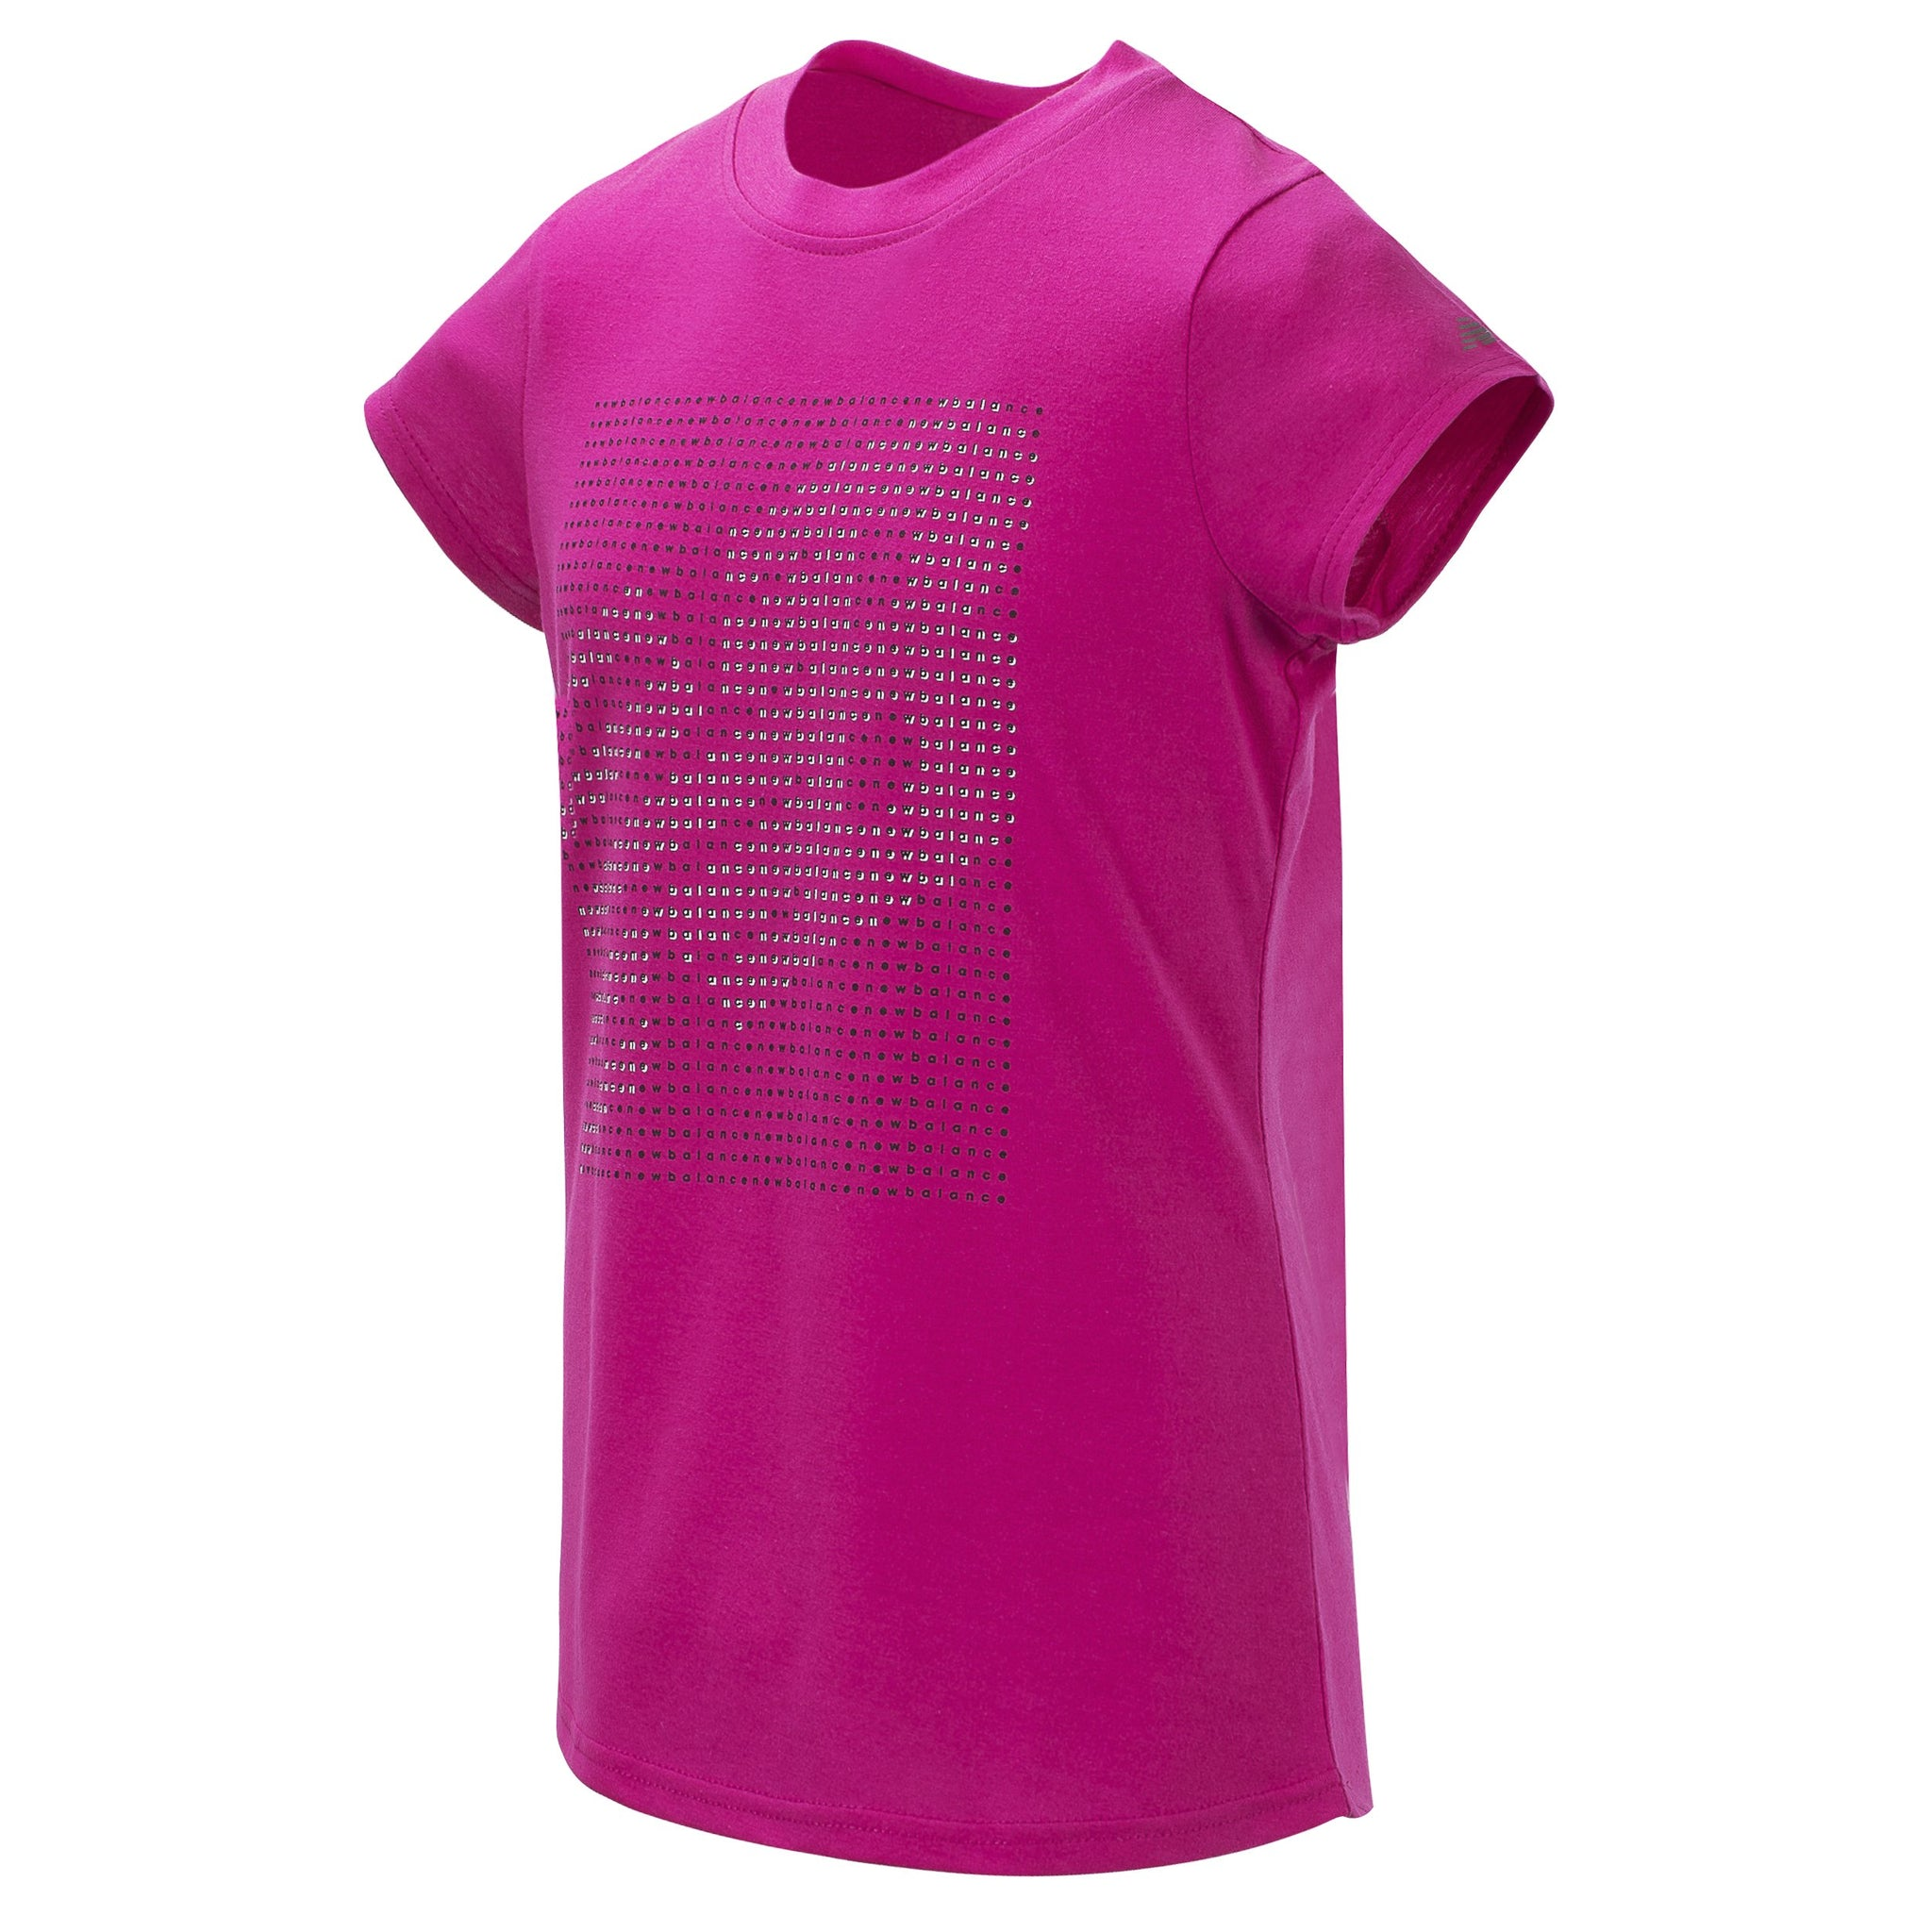 Girls' New Balance Carnival Pink with Glitter Short Sleeve Graphic Tee